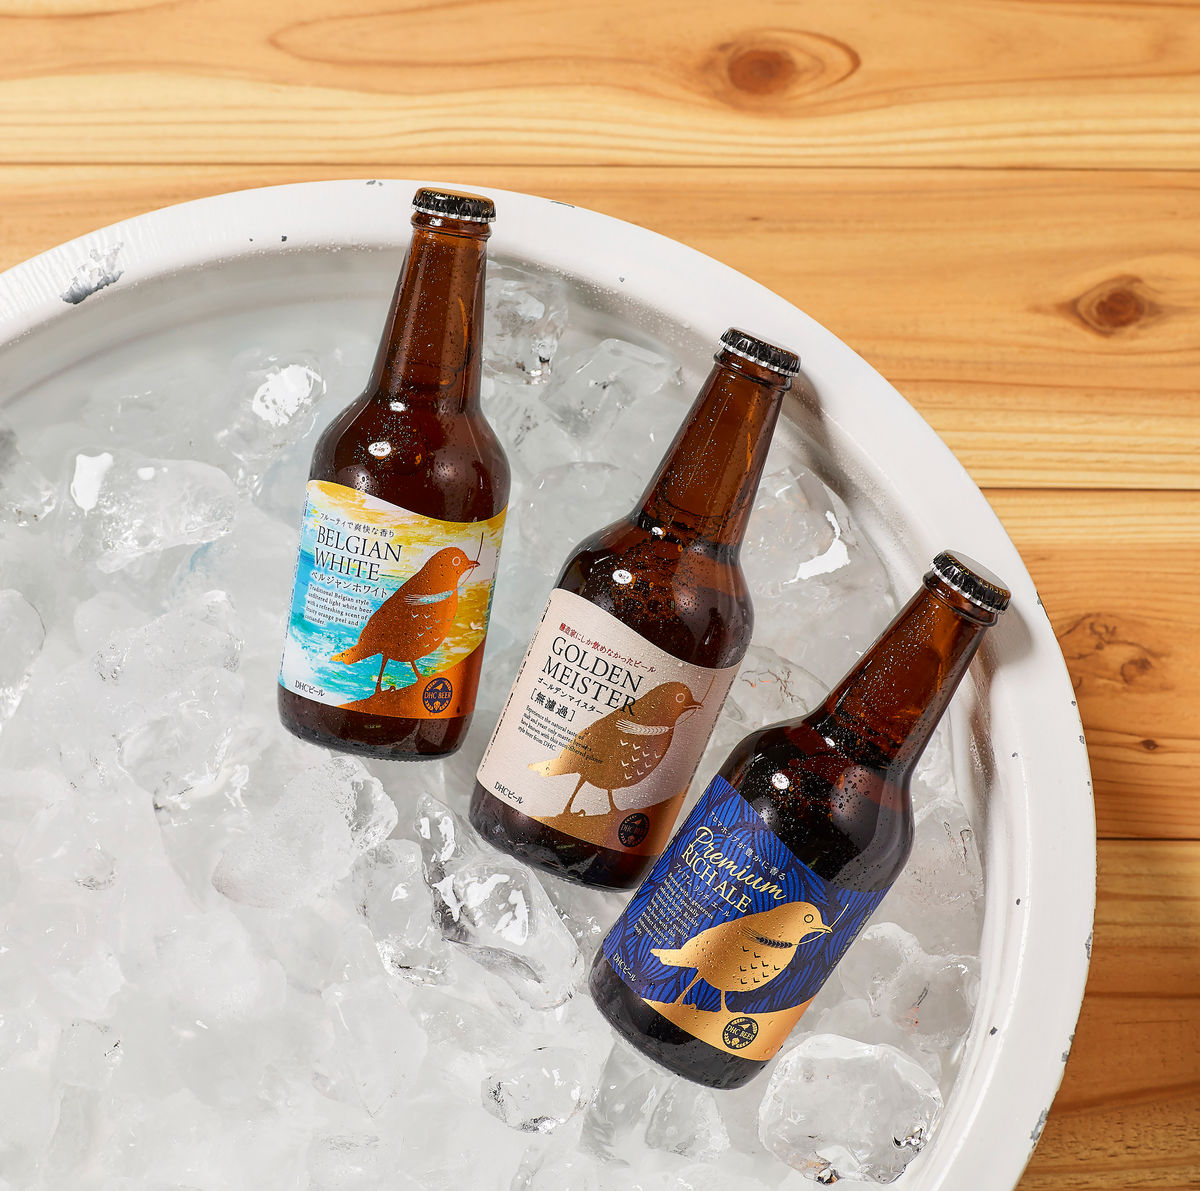 dhc beer co. beers chilling in an ice bucket